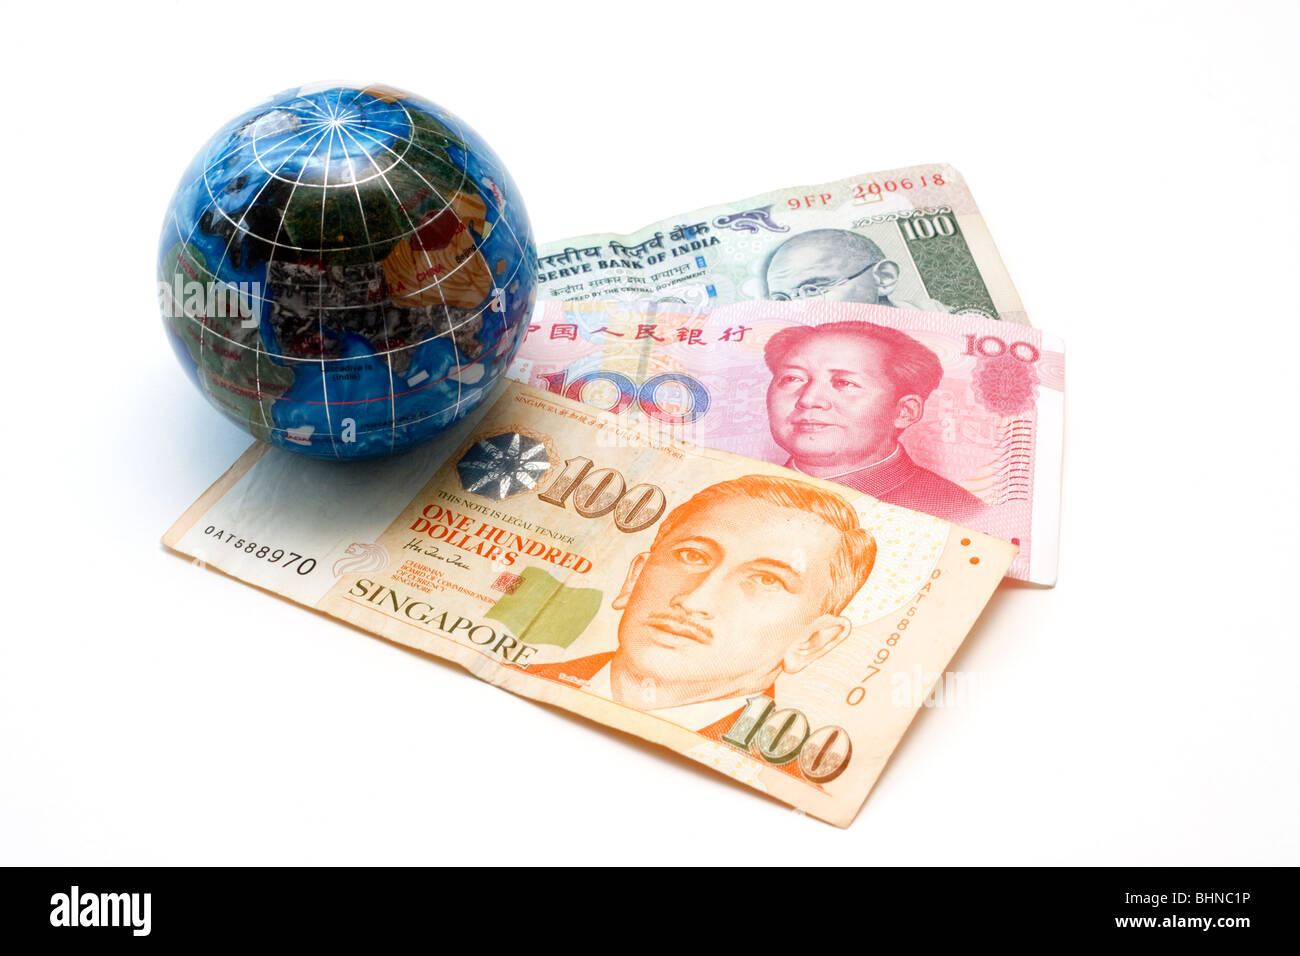 Asian currencies with miniature globe. Singapore 100 dollar bill, Chinese 100 yuan and Indian 100 rupees. - Stock Image